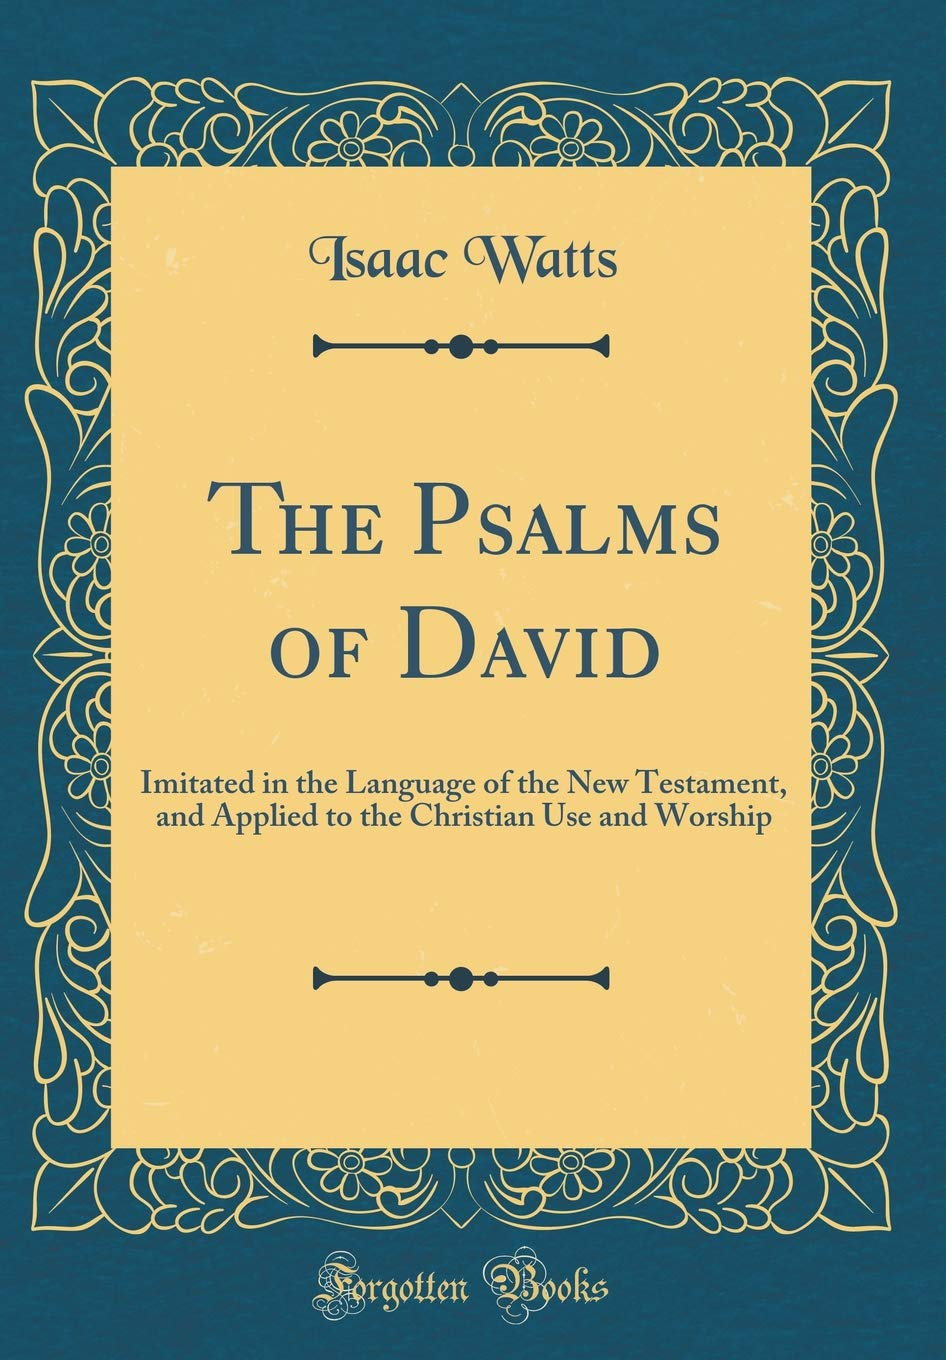 The Psalms of David: Imitated in the Language of the New Testament, and Applied to the Christian Use and Worship (Classic Reprint) by Forgotten Books